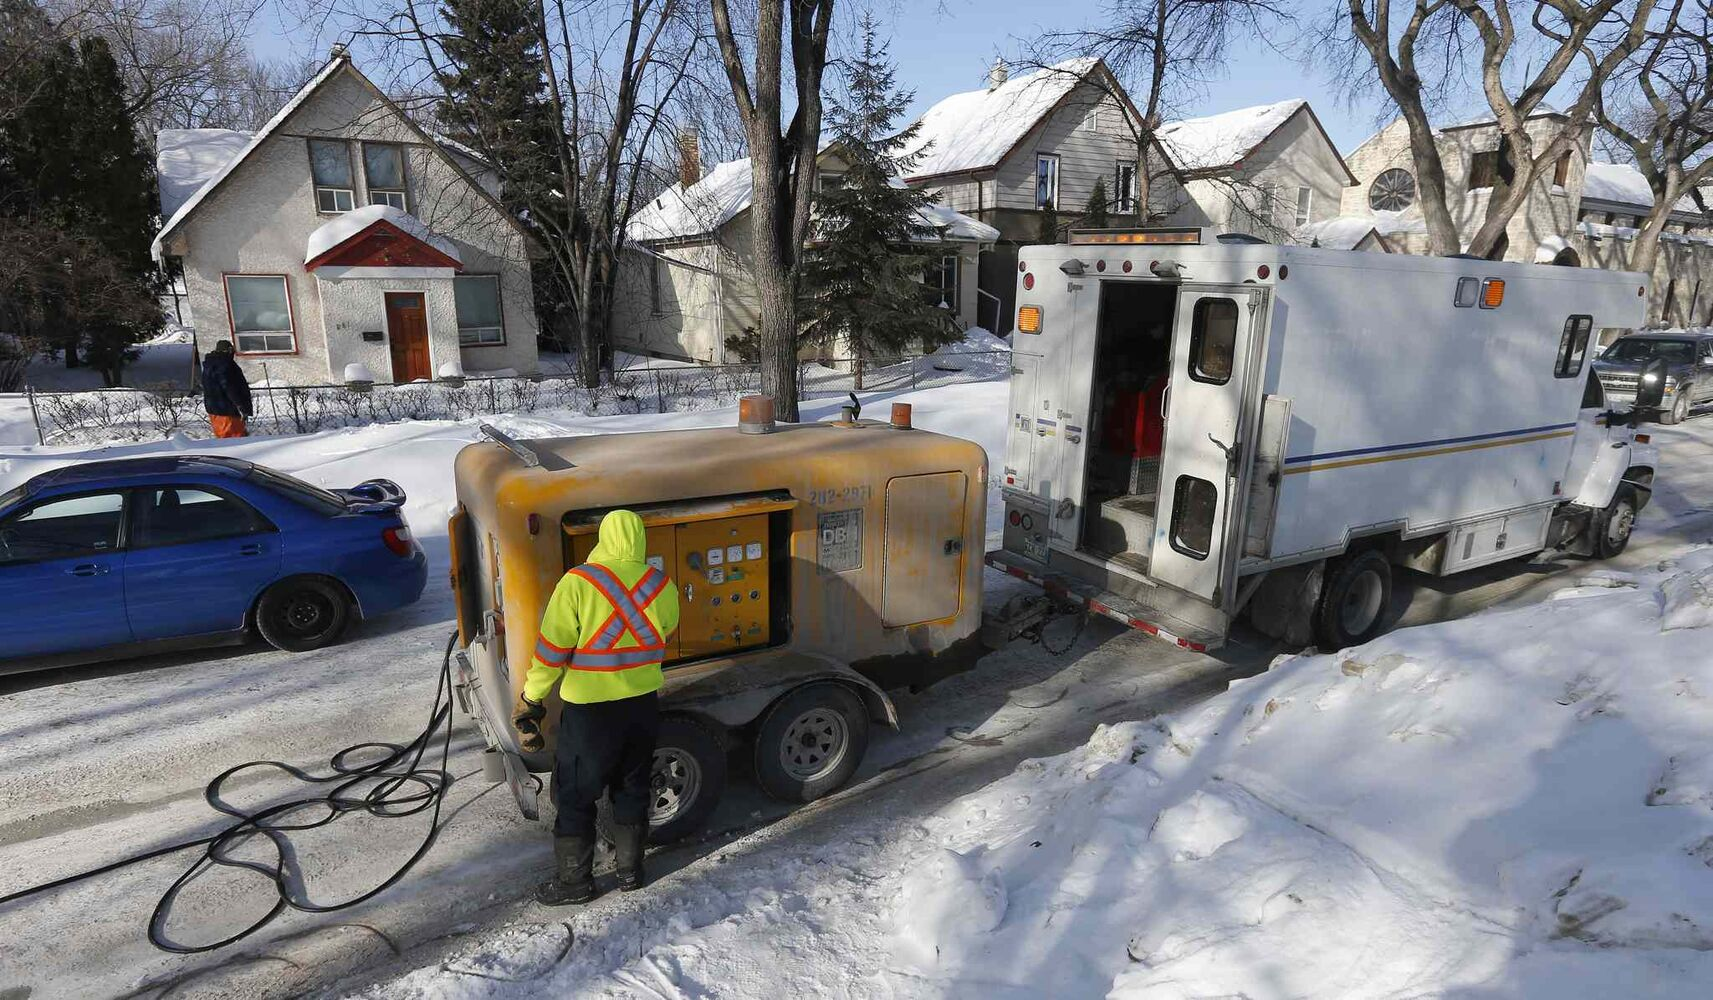 With freezing weather comes frozen pipes. Hundreds of Winnipeggers have been without water as they wait for the city to heat up frozen water lines like this one under Mulvey Avenue.